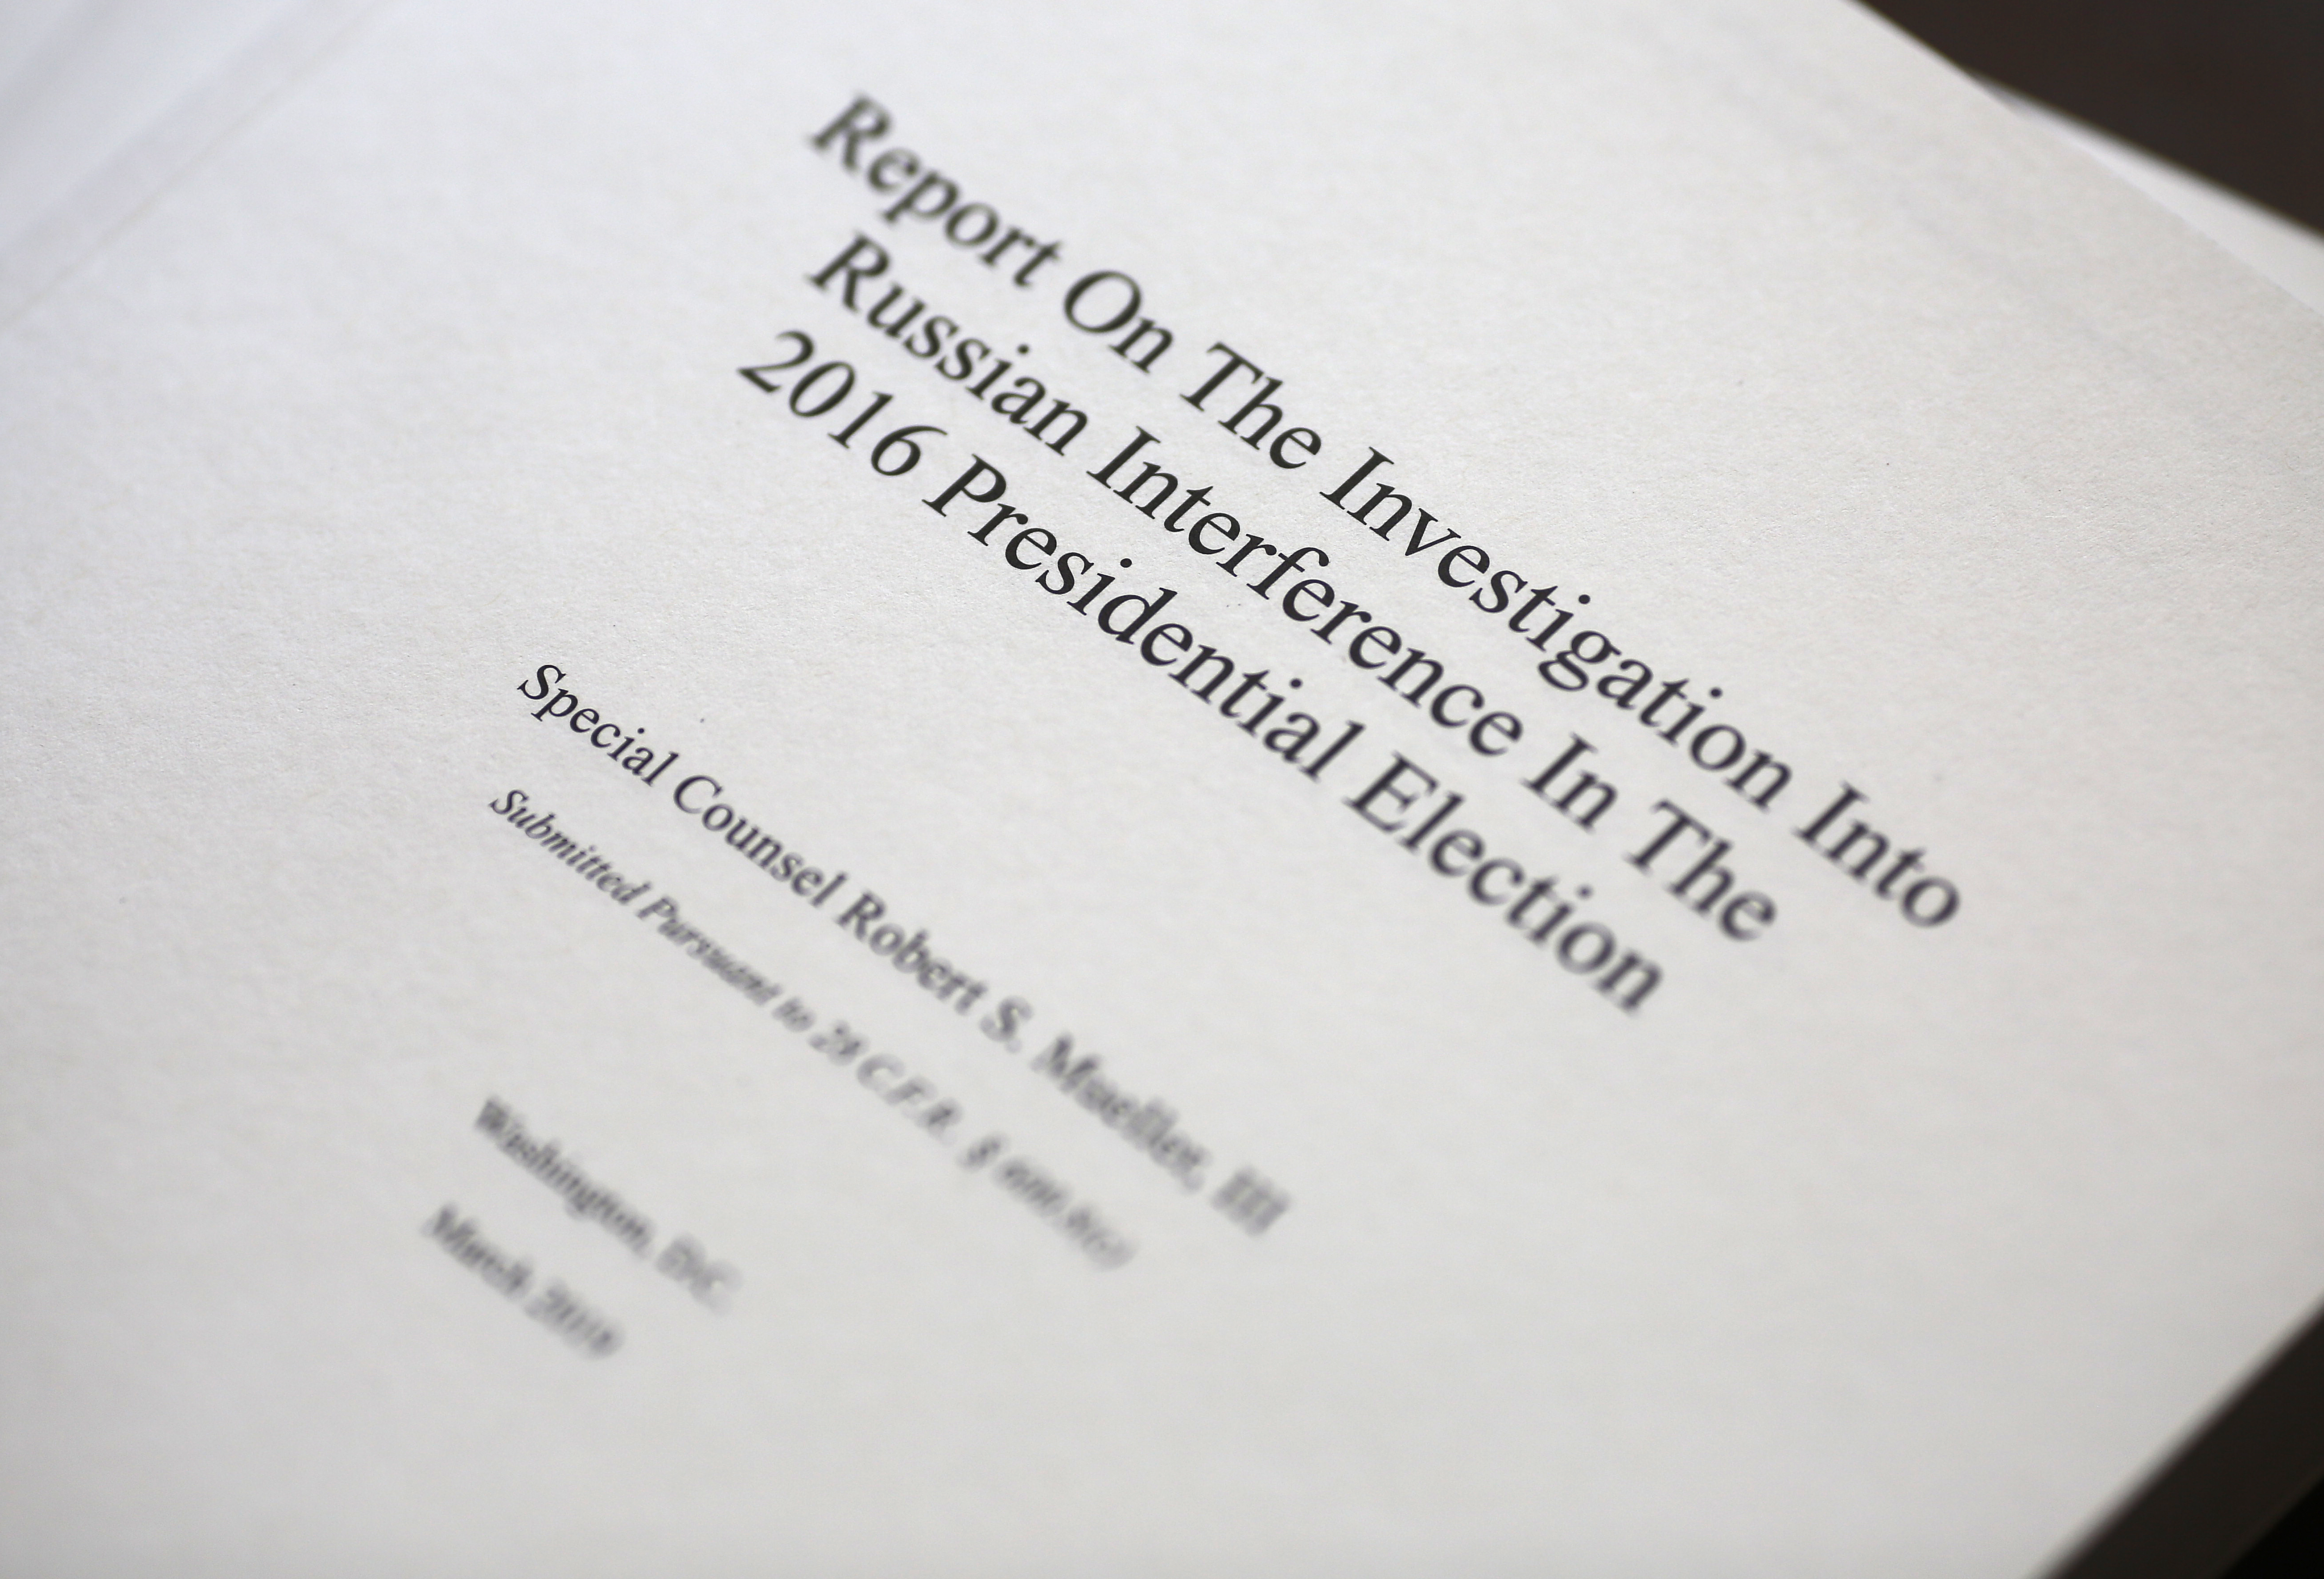 """WASHINGTON, DC - APRIL 24: The cover of the recently released Mueller Report is shown April 24, 2019 in Washington, DC. In response to news from then Attorney General Jeff Sessions that Robert Mueller had been appointed as a Special Counsel to investigate allegations of Russian interference in the 2016 U.S. presidential election, U.S. President Donald Trump said """"Oh my God. This is terrible. This is the end of my presidency."""" (Photo by Win McNamee/Getty Images)"""